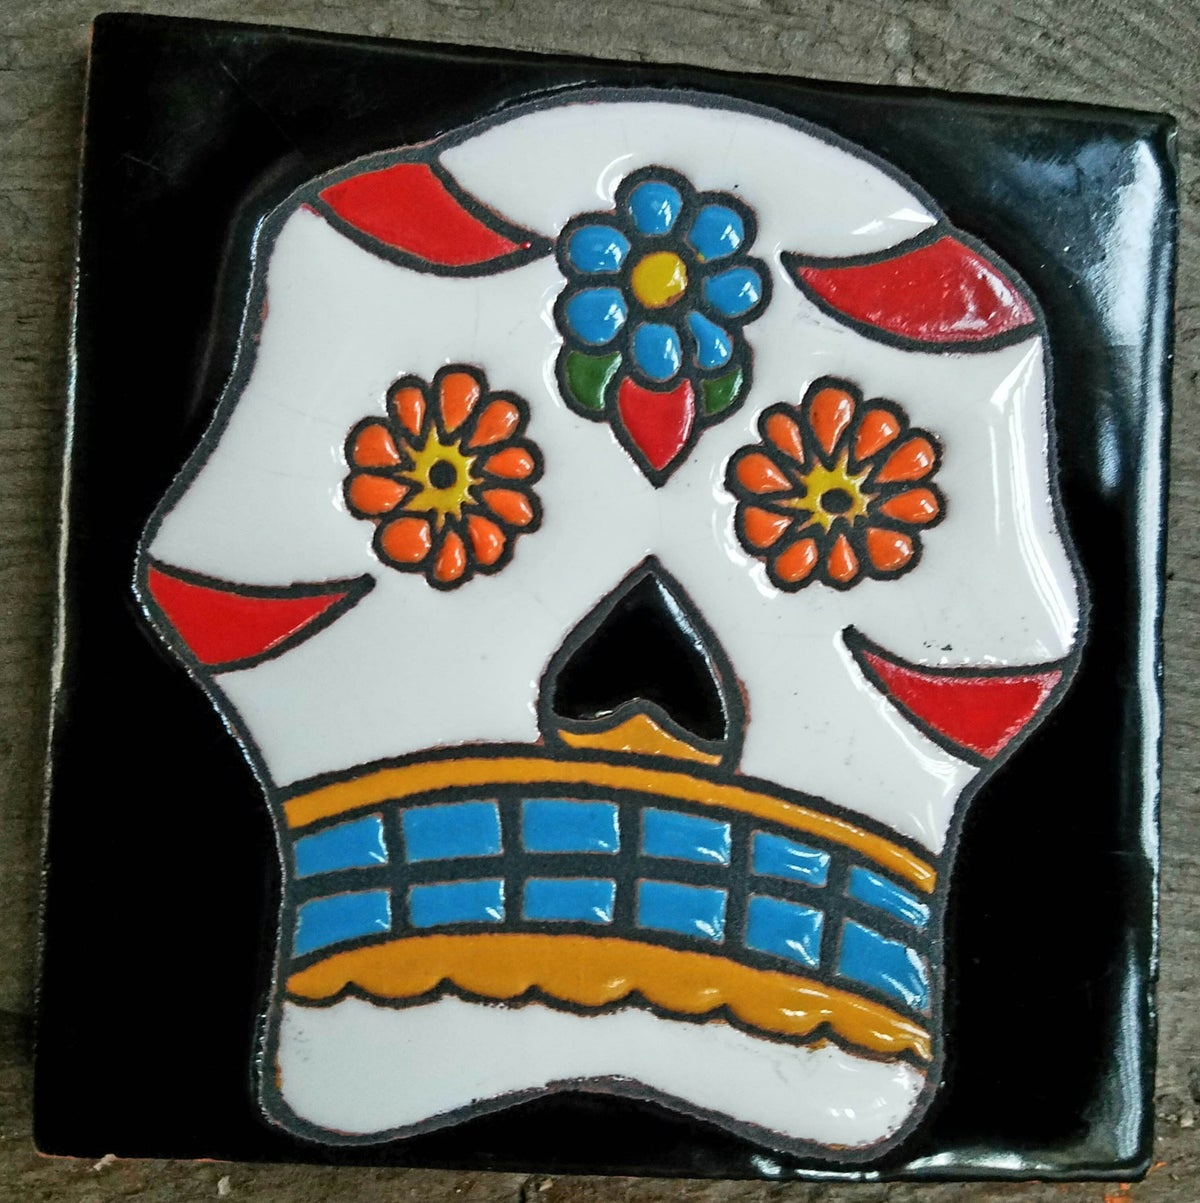 Image of Sugar Skull Coaster Tile